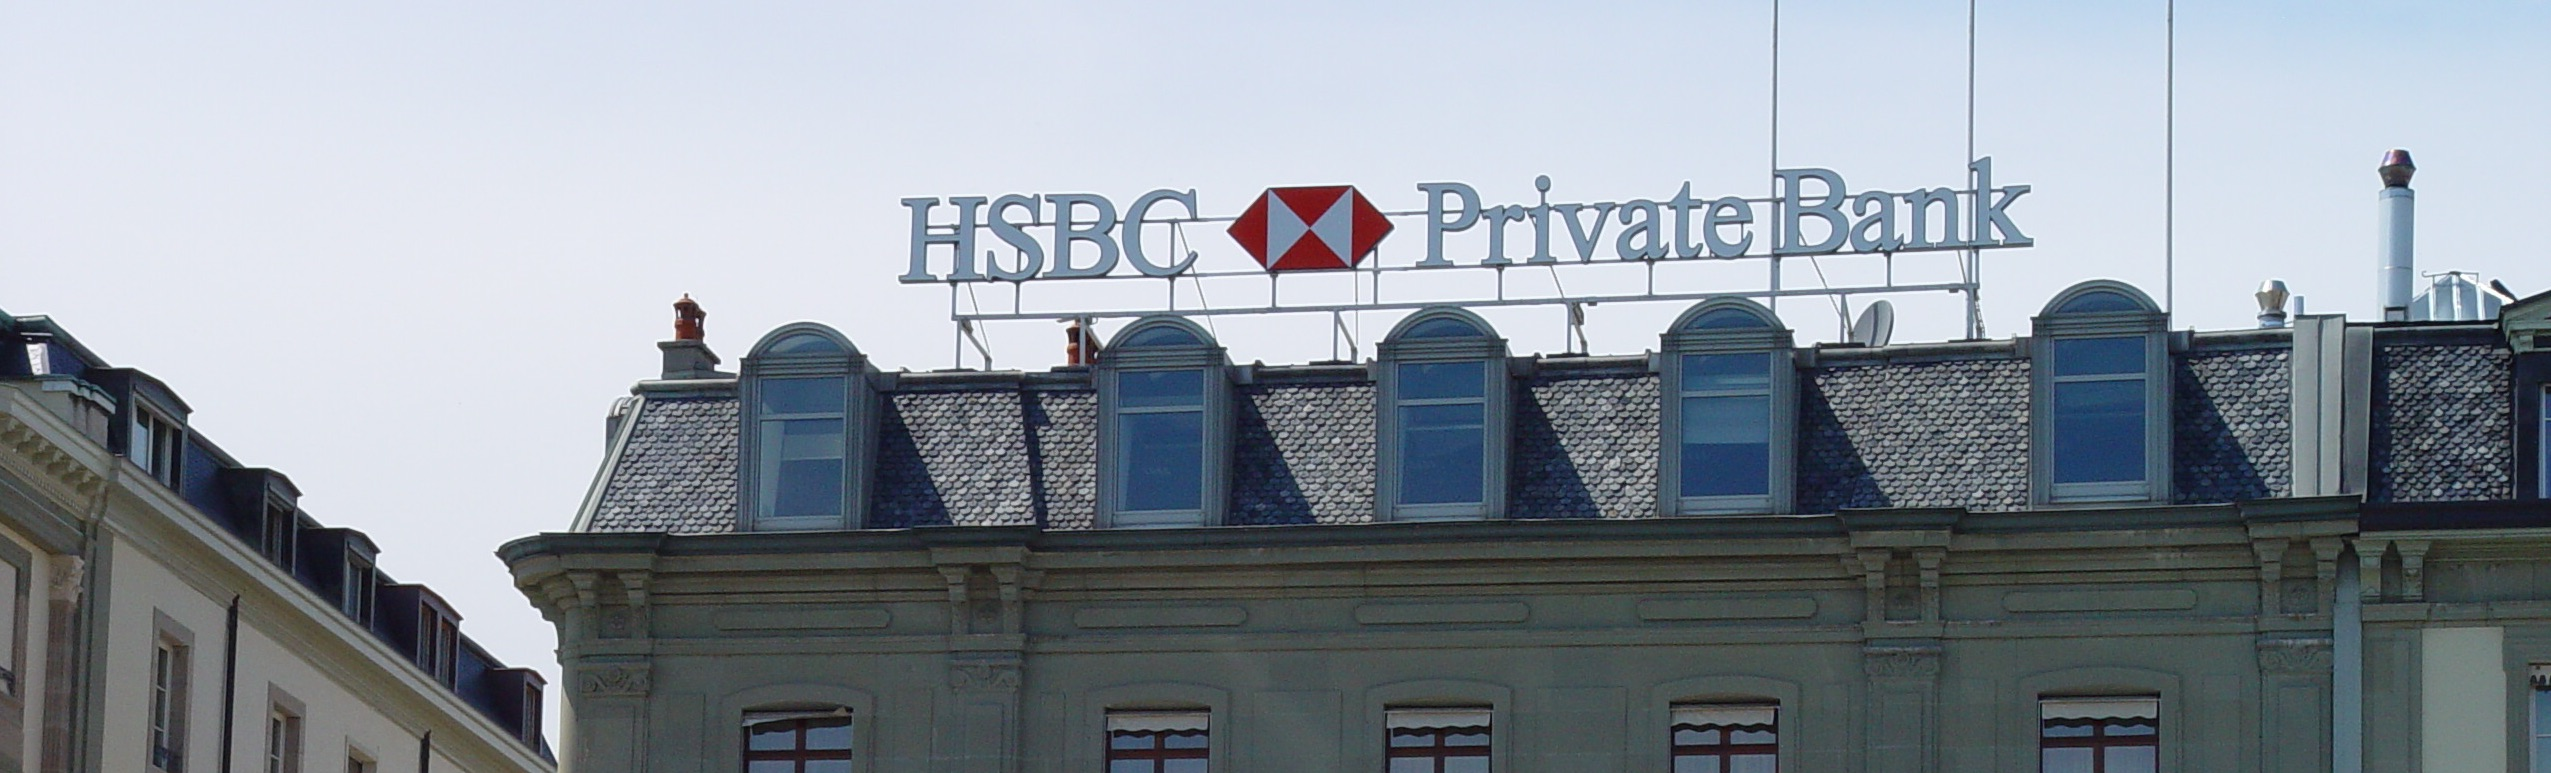 The Swiss Have Sent a Chilling Message to Banking Whistleblowers